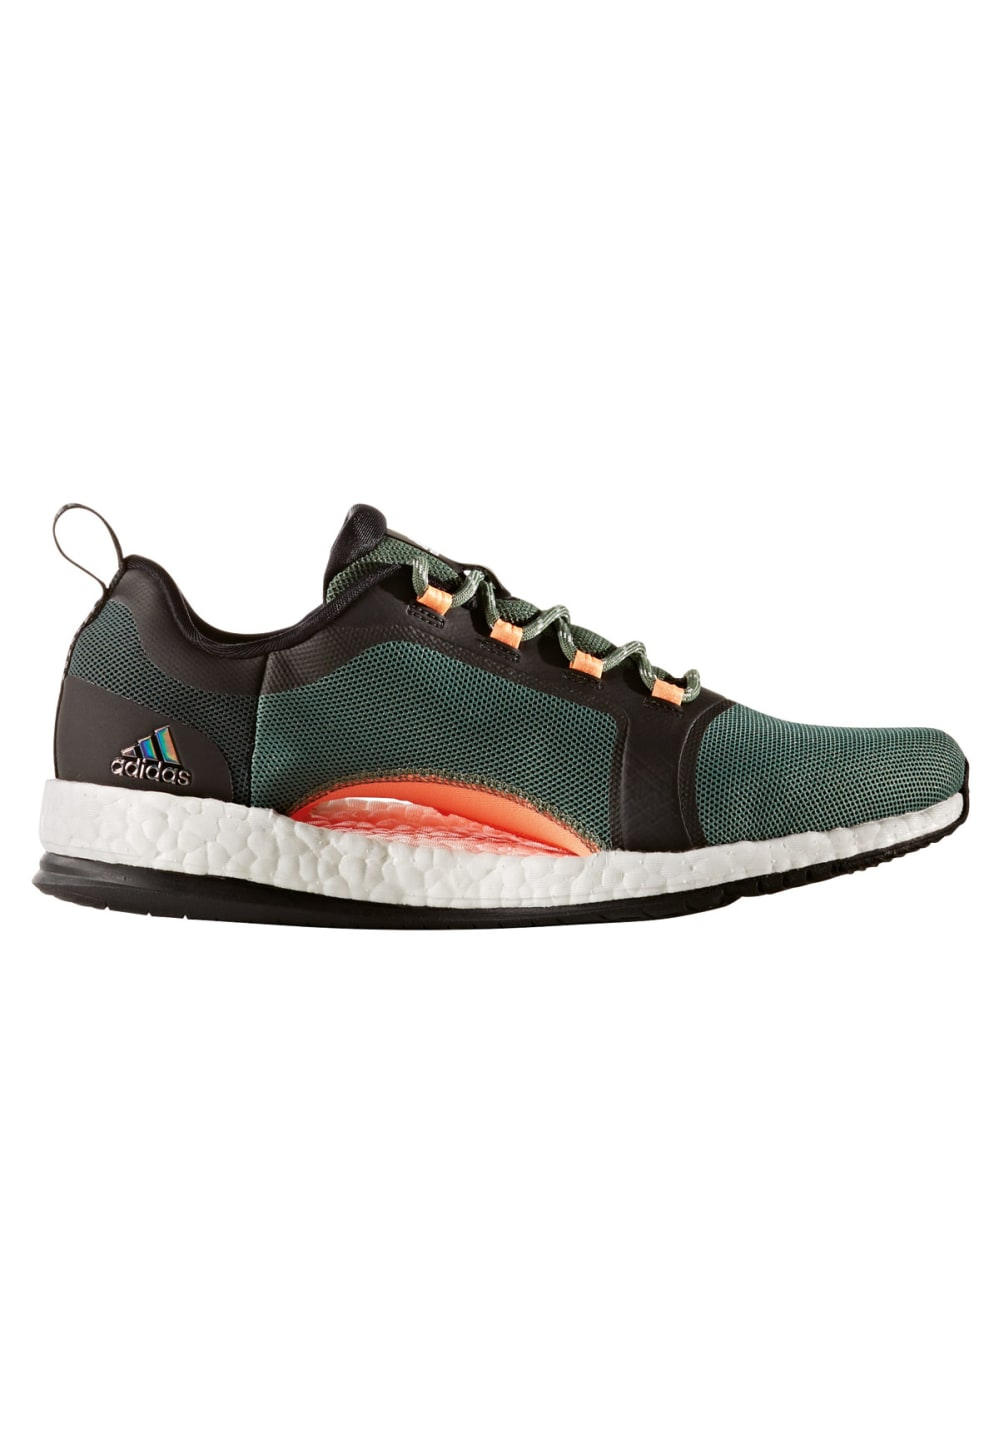 adidas Pure Boost X Trainer 2 Chaussures fitness pour Femme Vert